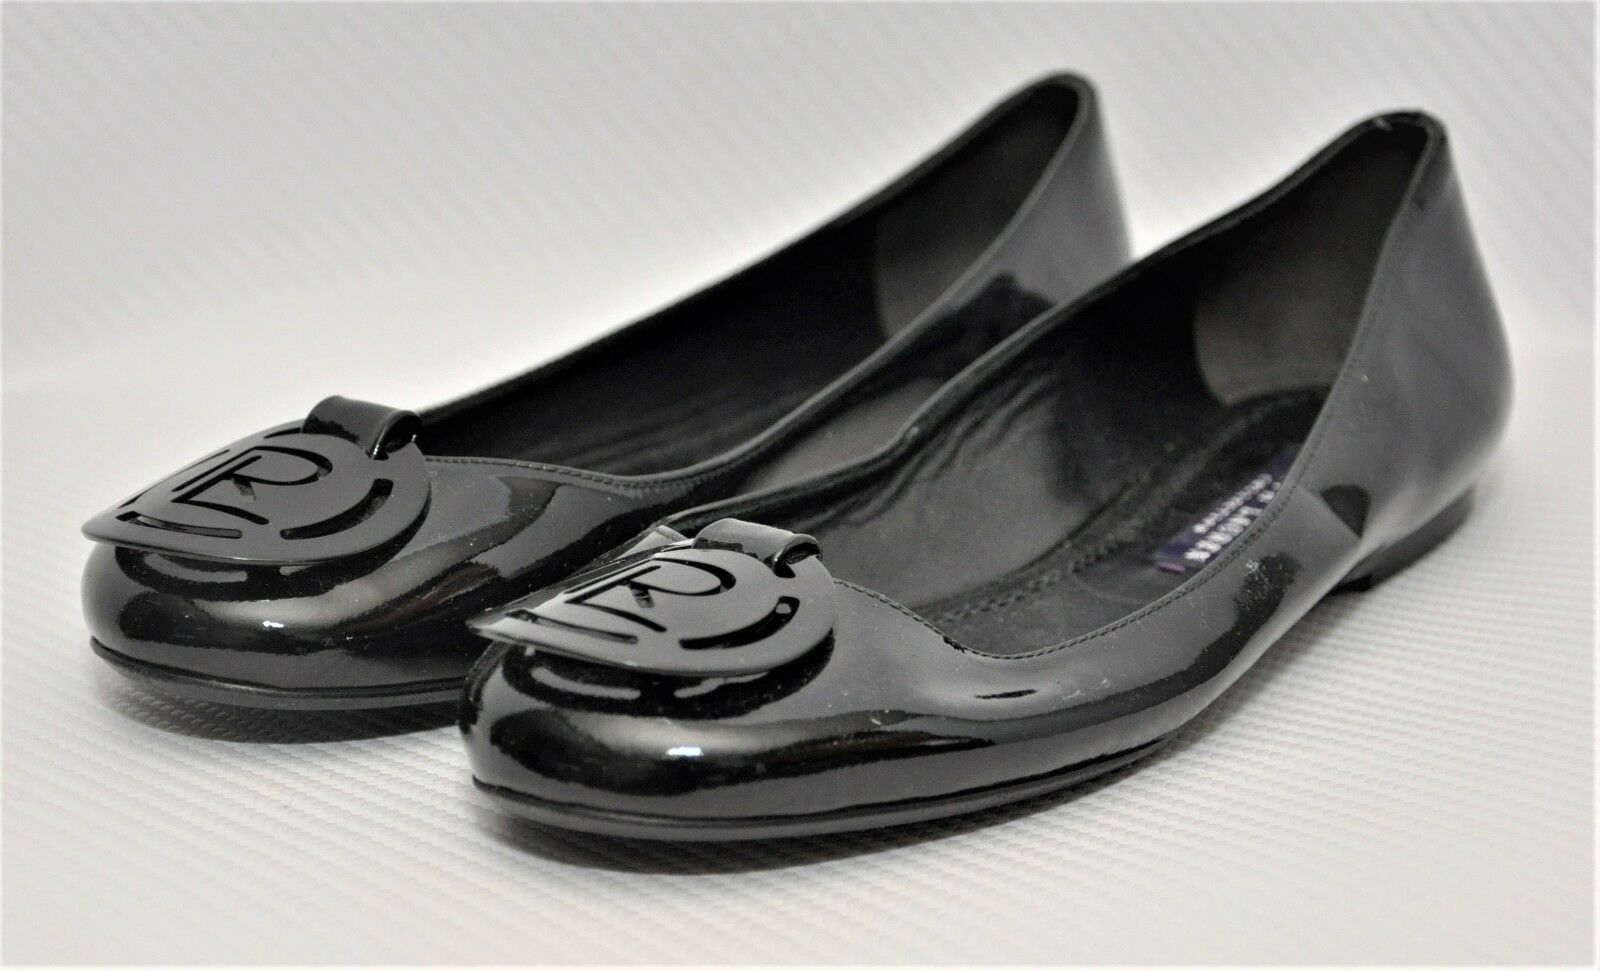 Ralph Lauren Collection Patent Leather Logo Ballet Flat Black Black Black 36 6  650 New 12335c